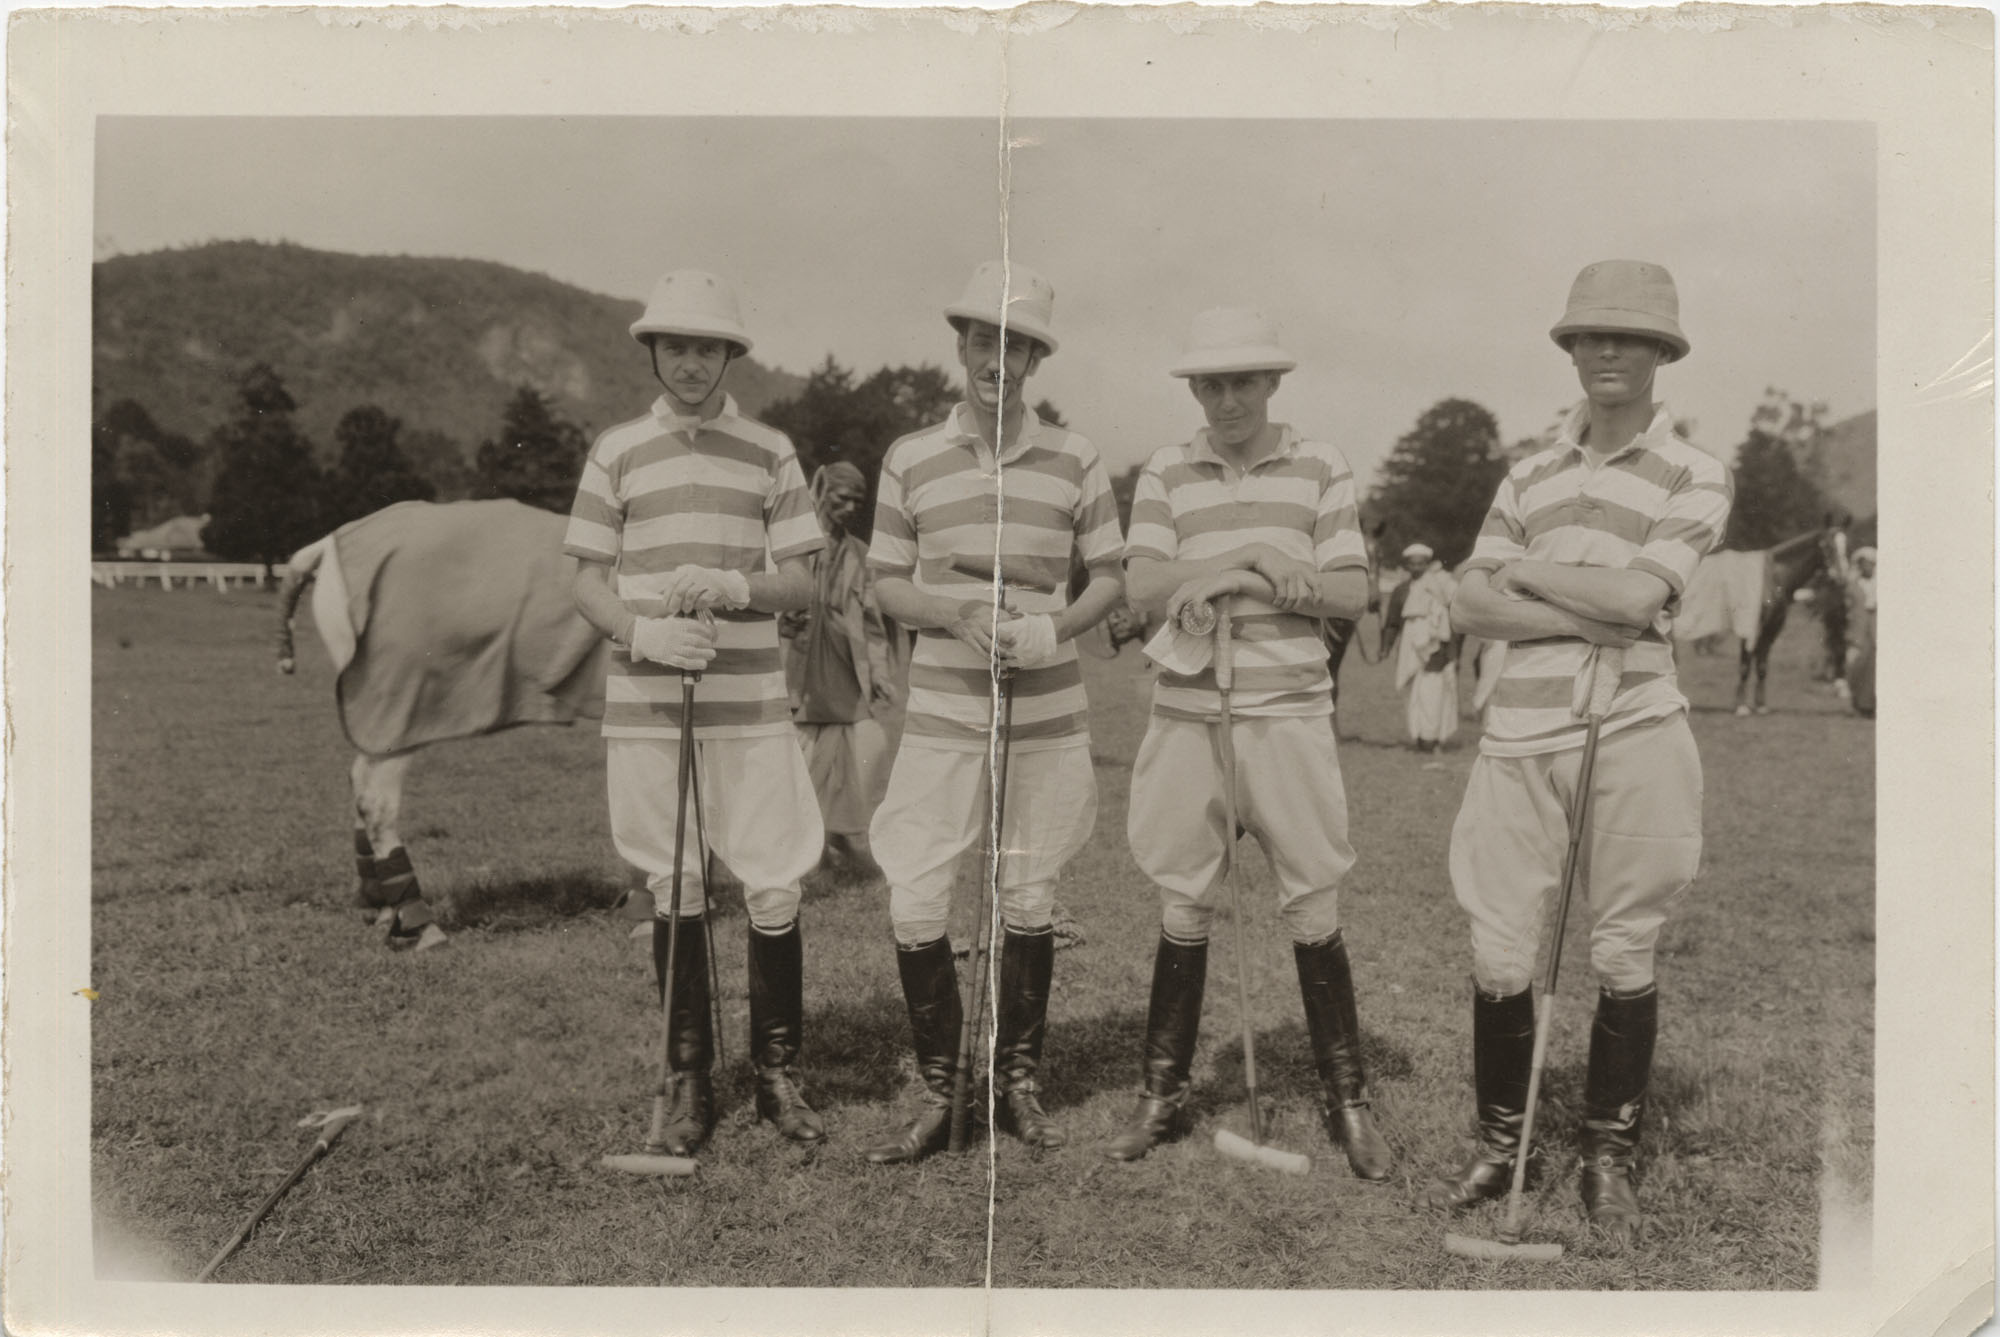 Mario Pansa with his polo team, Photograph 5